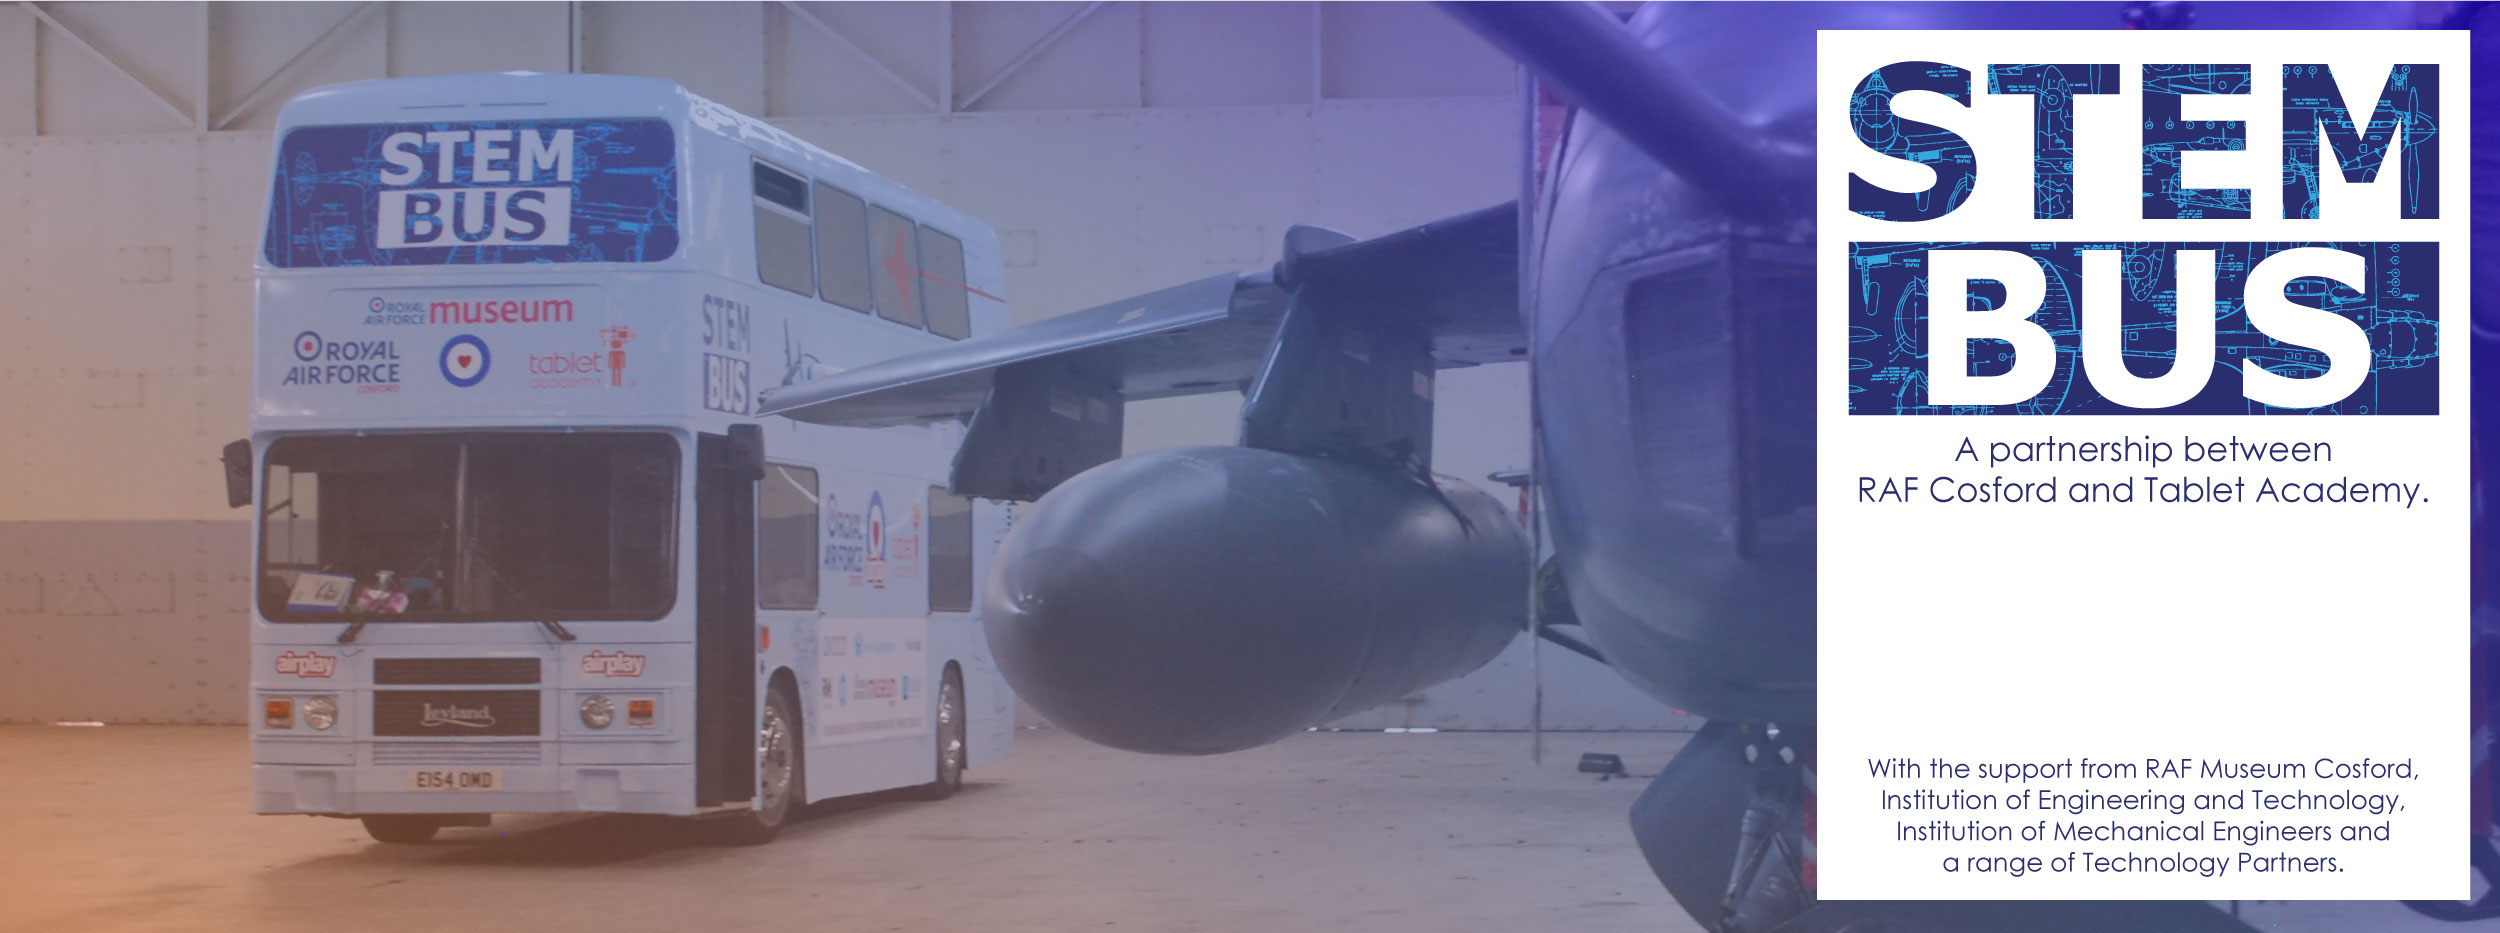 STEM Bus -  A partnership between RAF Cosford and Tablet Academy.